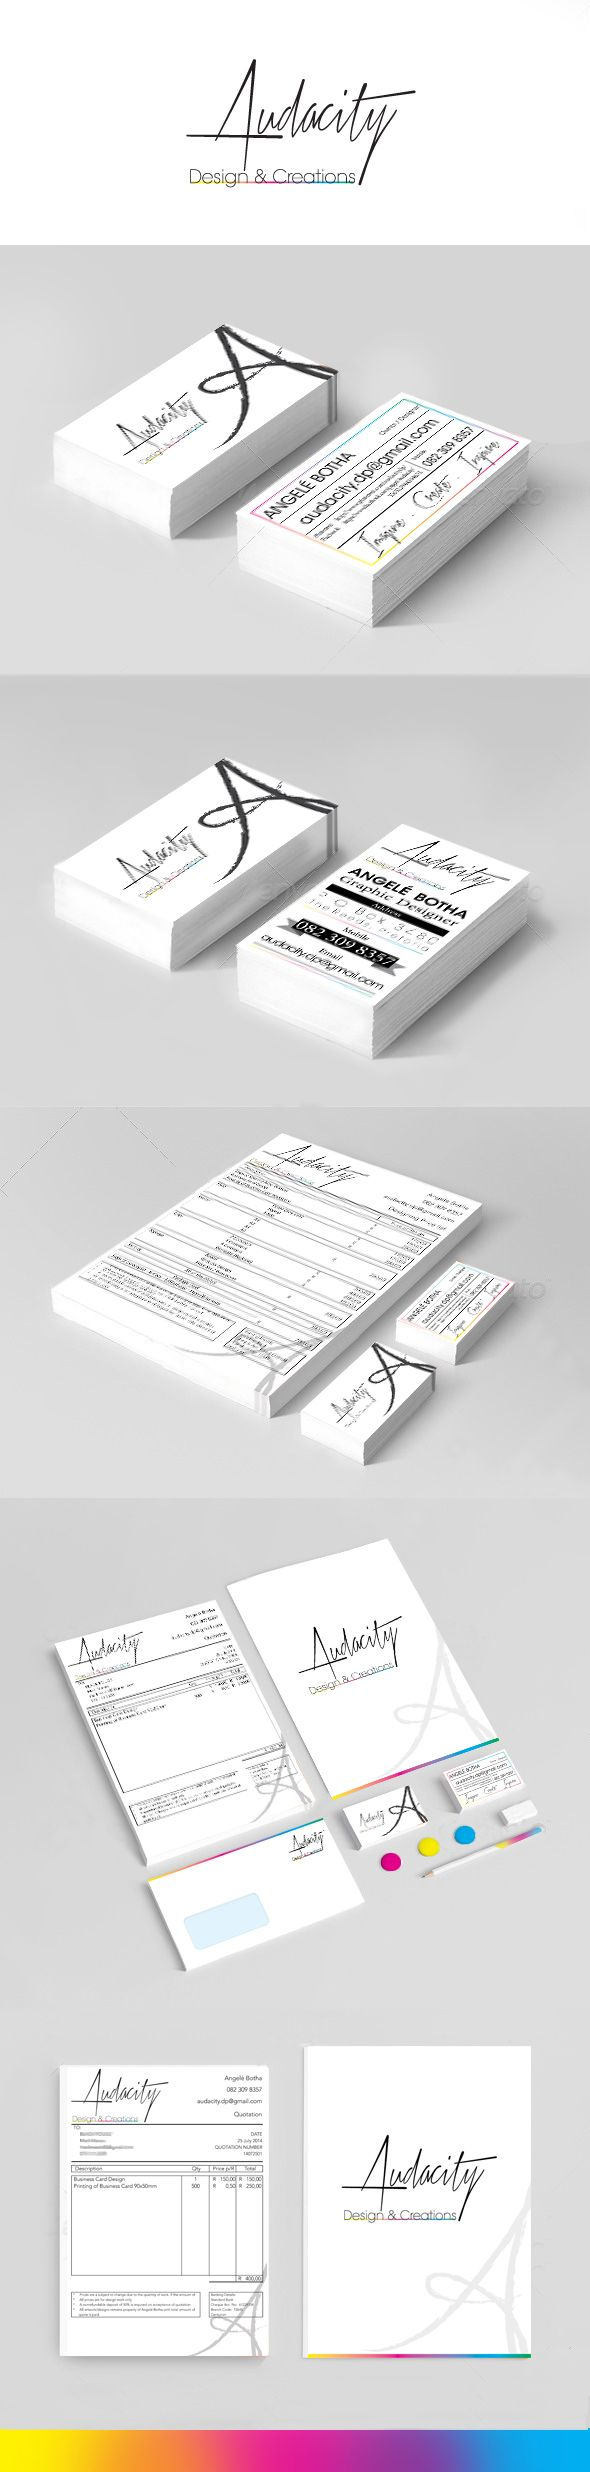 Audacity's Corporate Identity and stationary